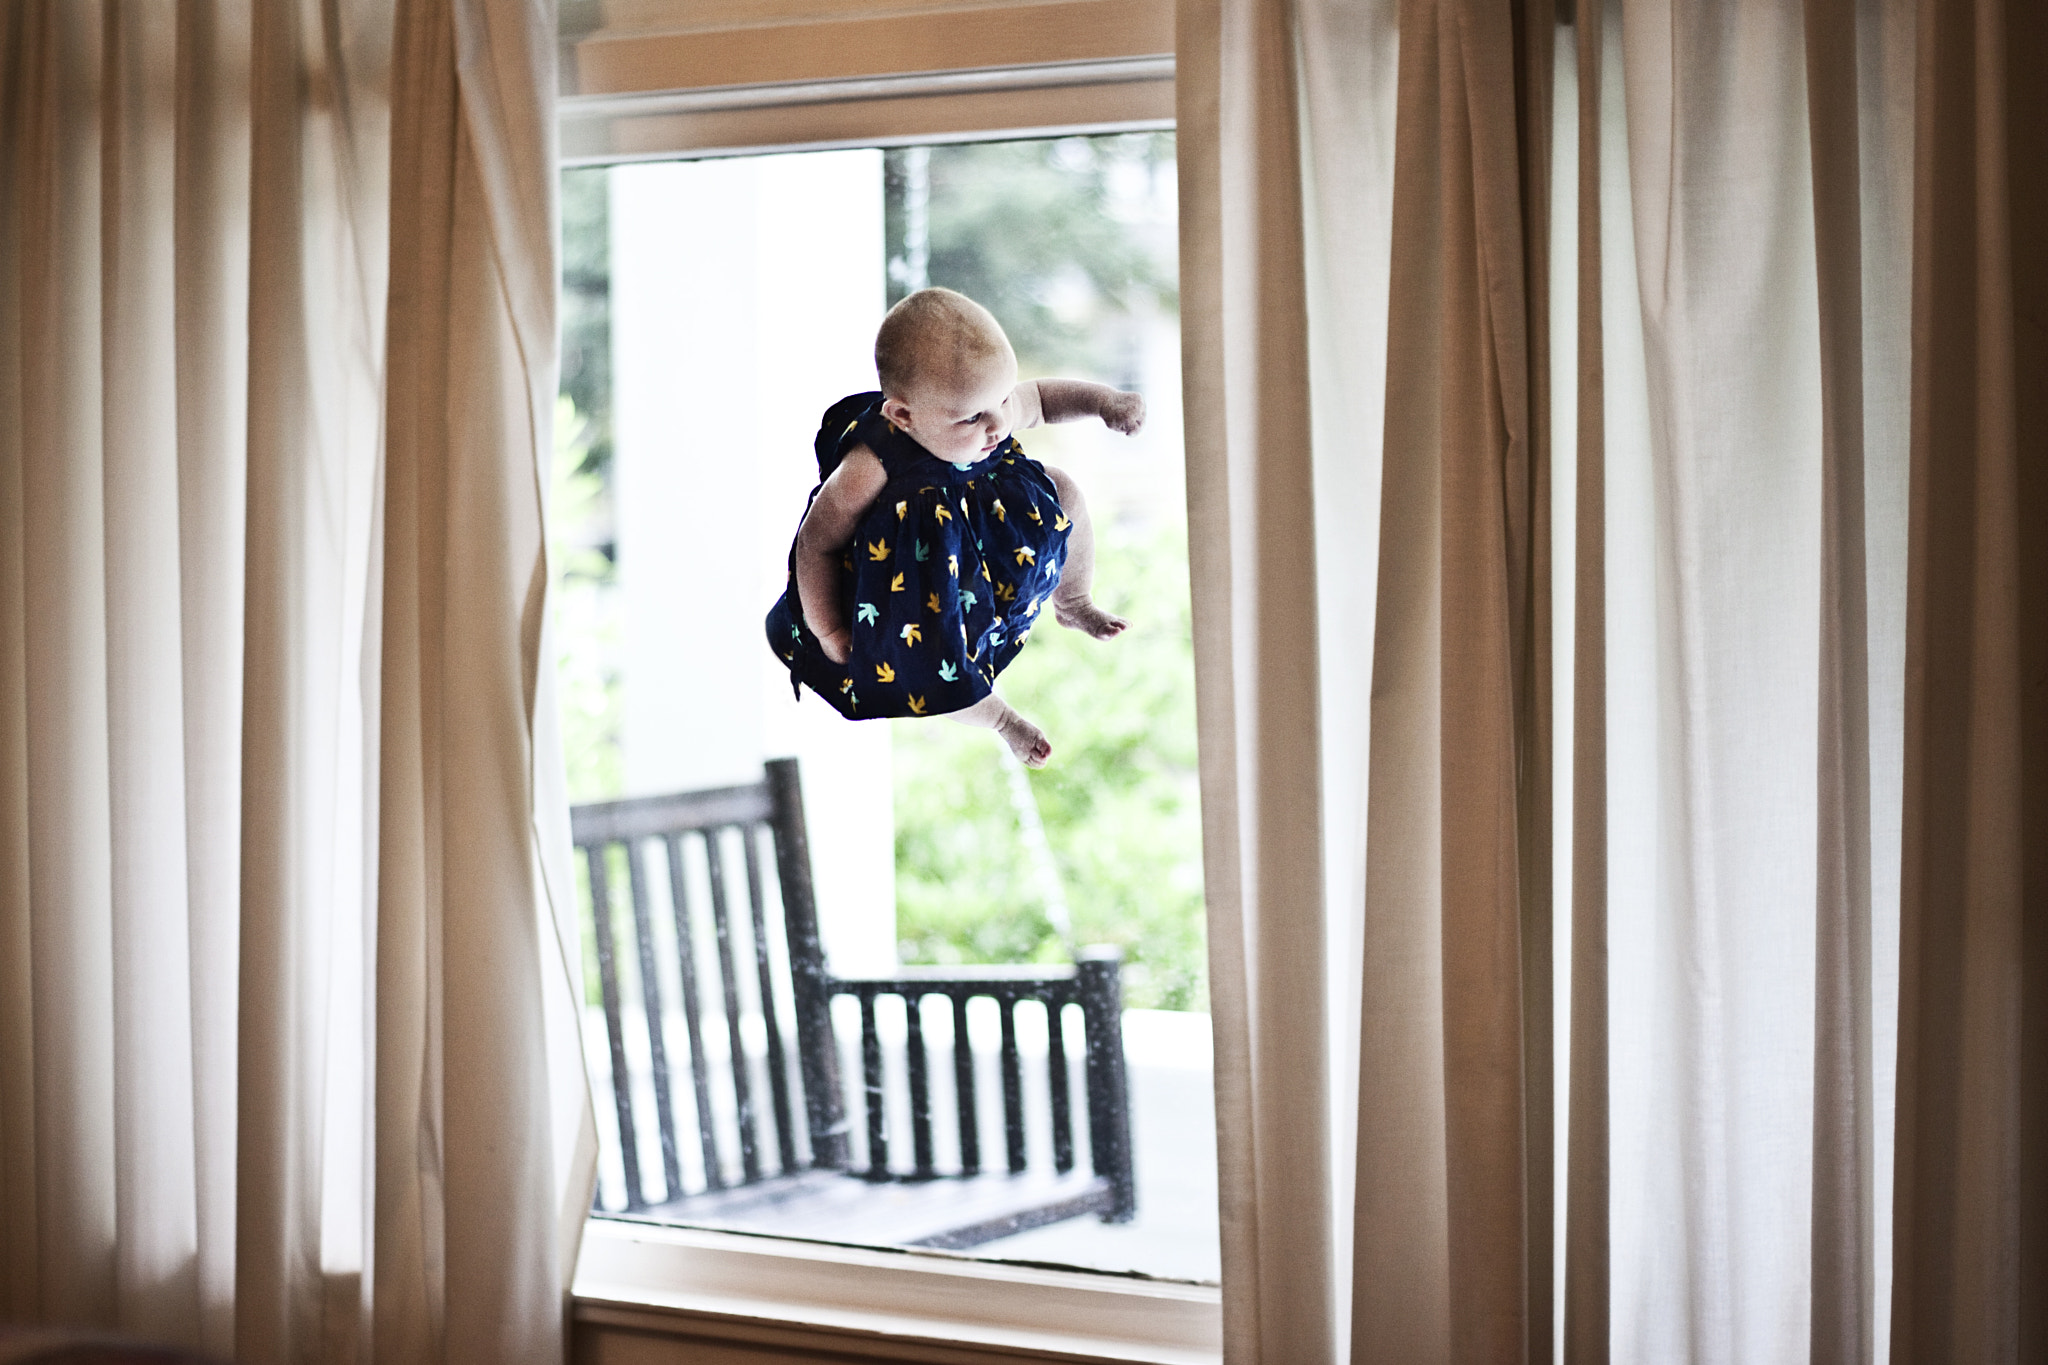 Photograph Outside the window by Ryan Arneson on 500px